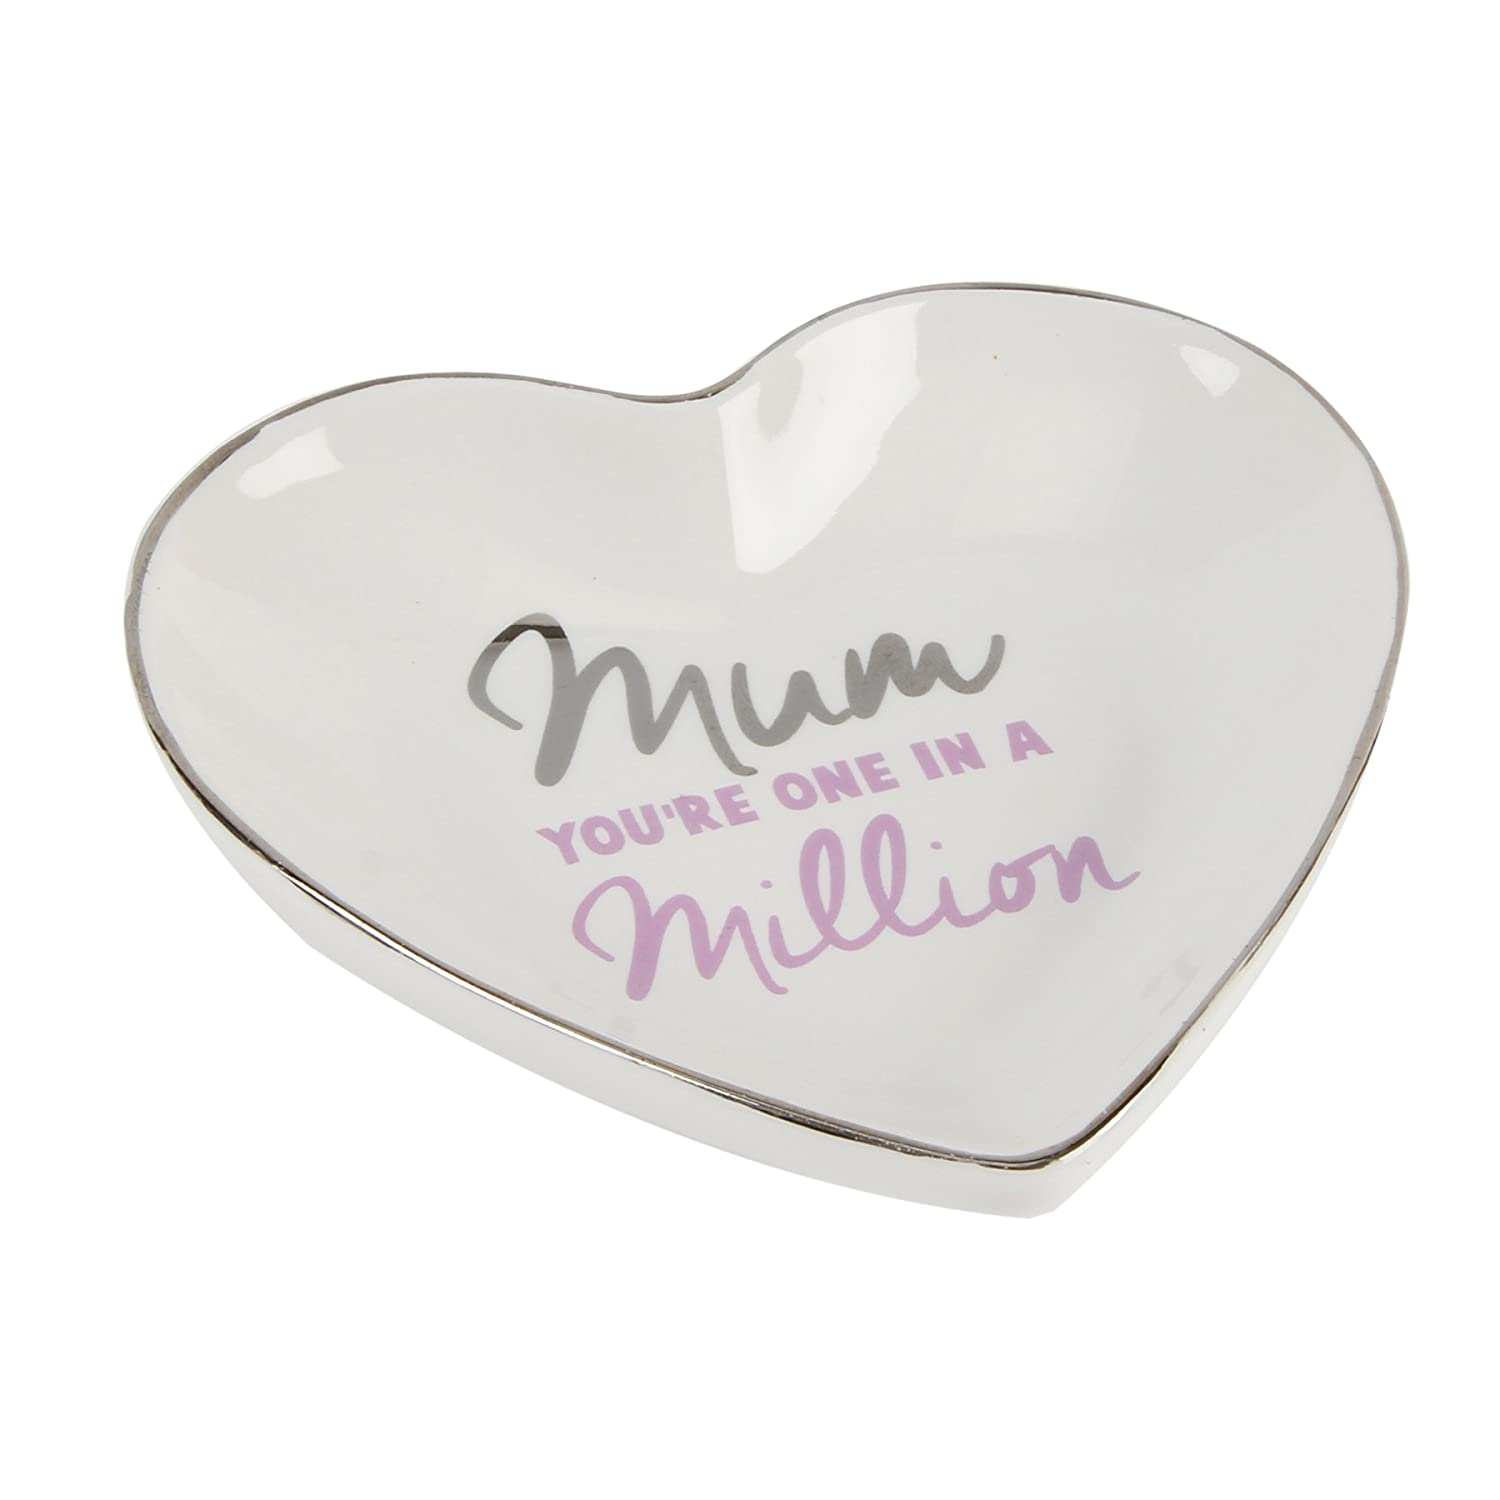 Lasting Memories Heart Shaped Trinket Plate Mum You/'re one in a Million